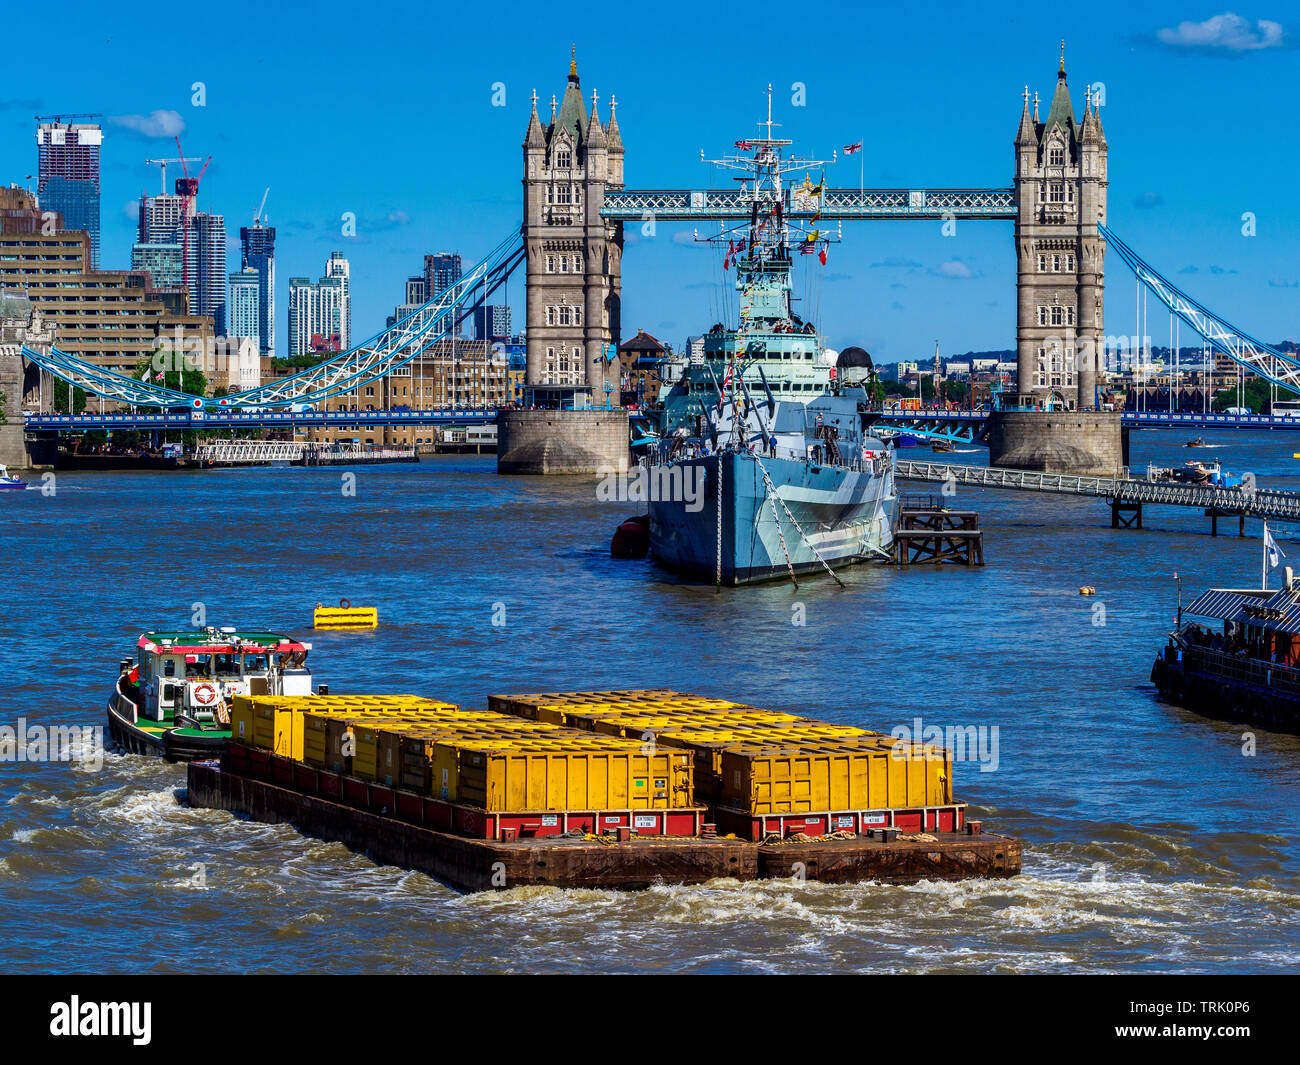 London Waste - Barges full of London waste are towed down the River Thames to the Riverside Resource Recovery Energy from Waste facility at Belvedere - Stock Image